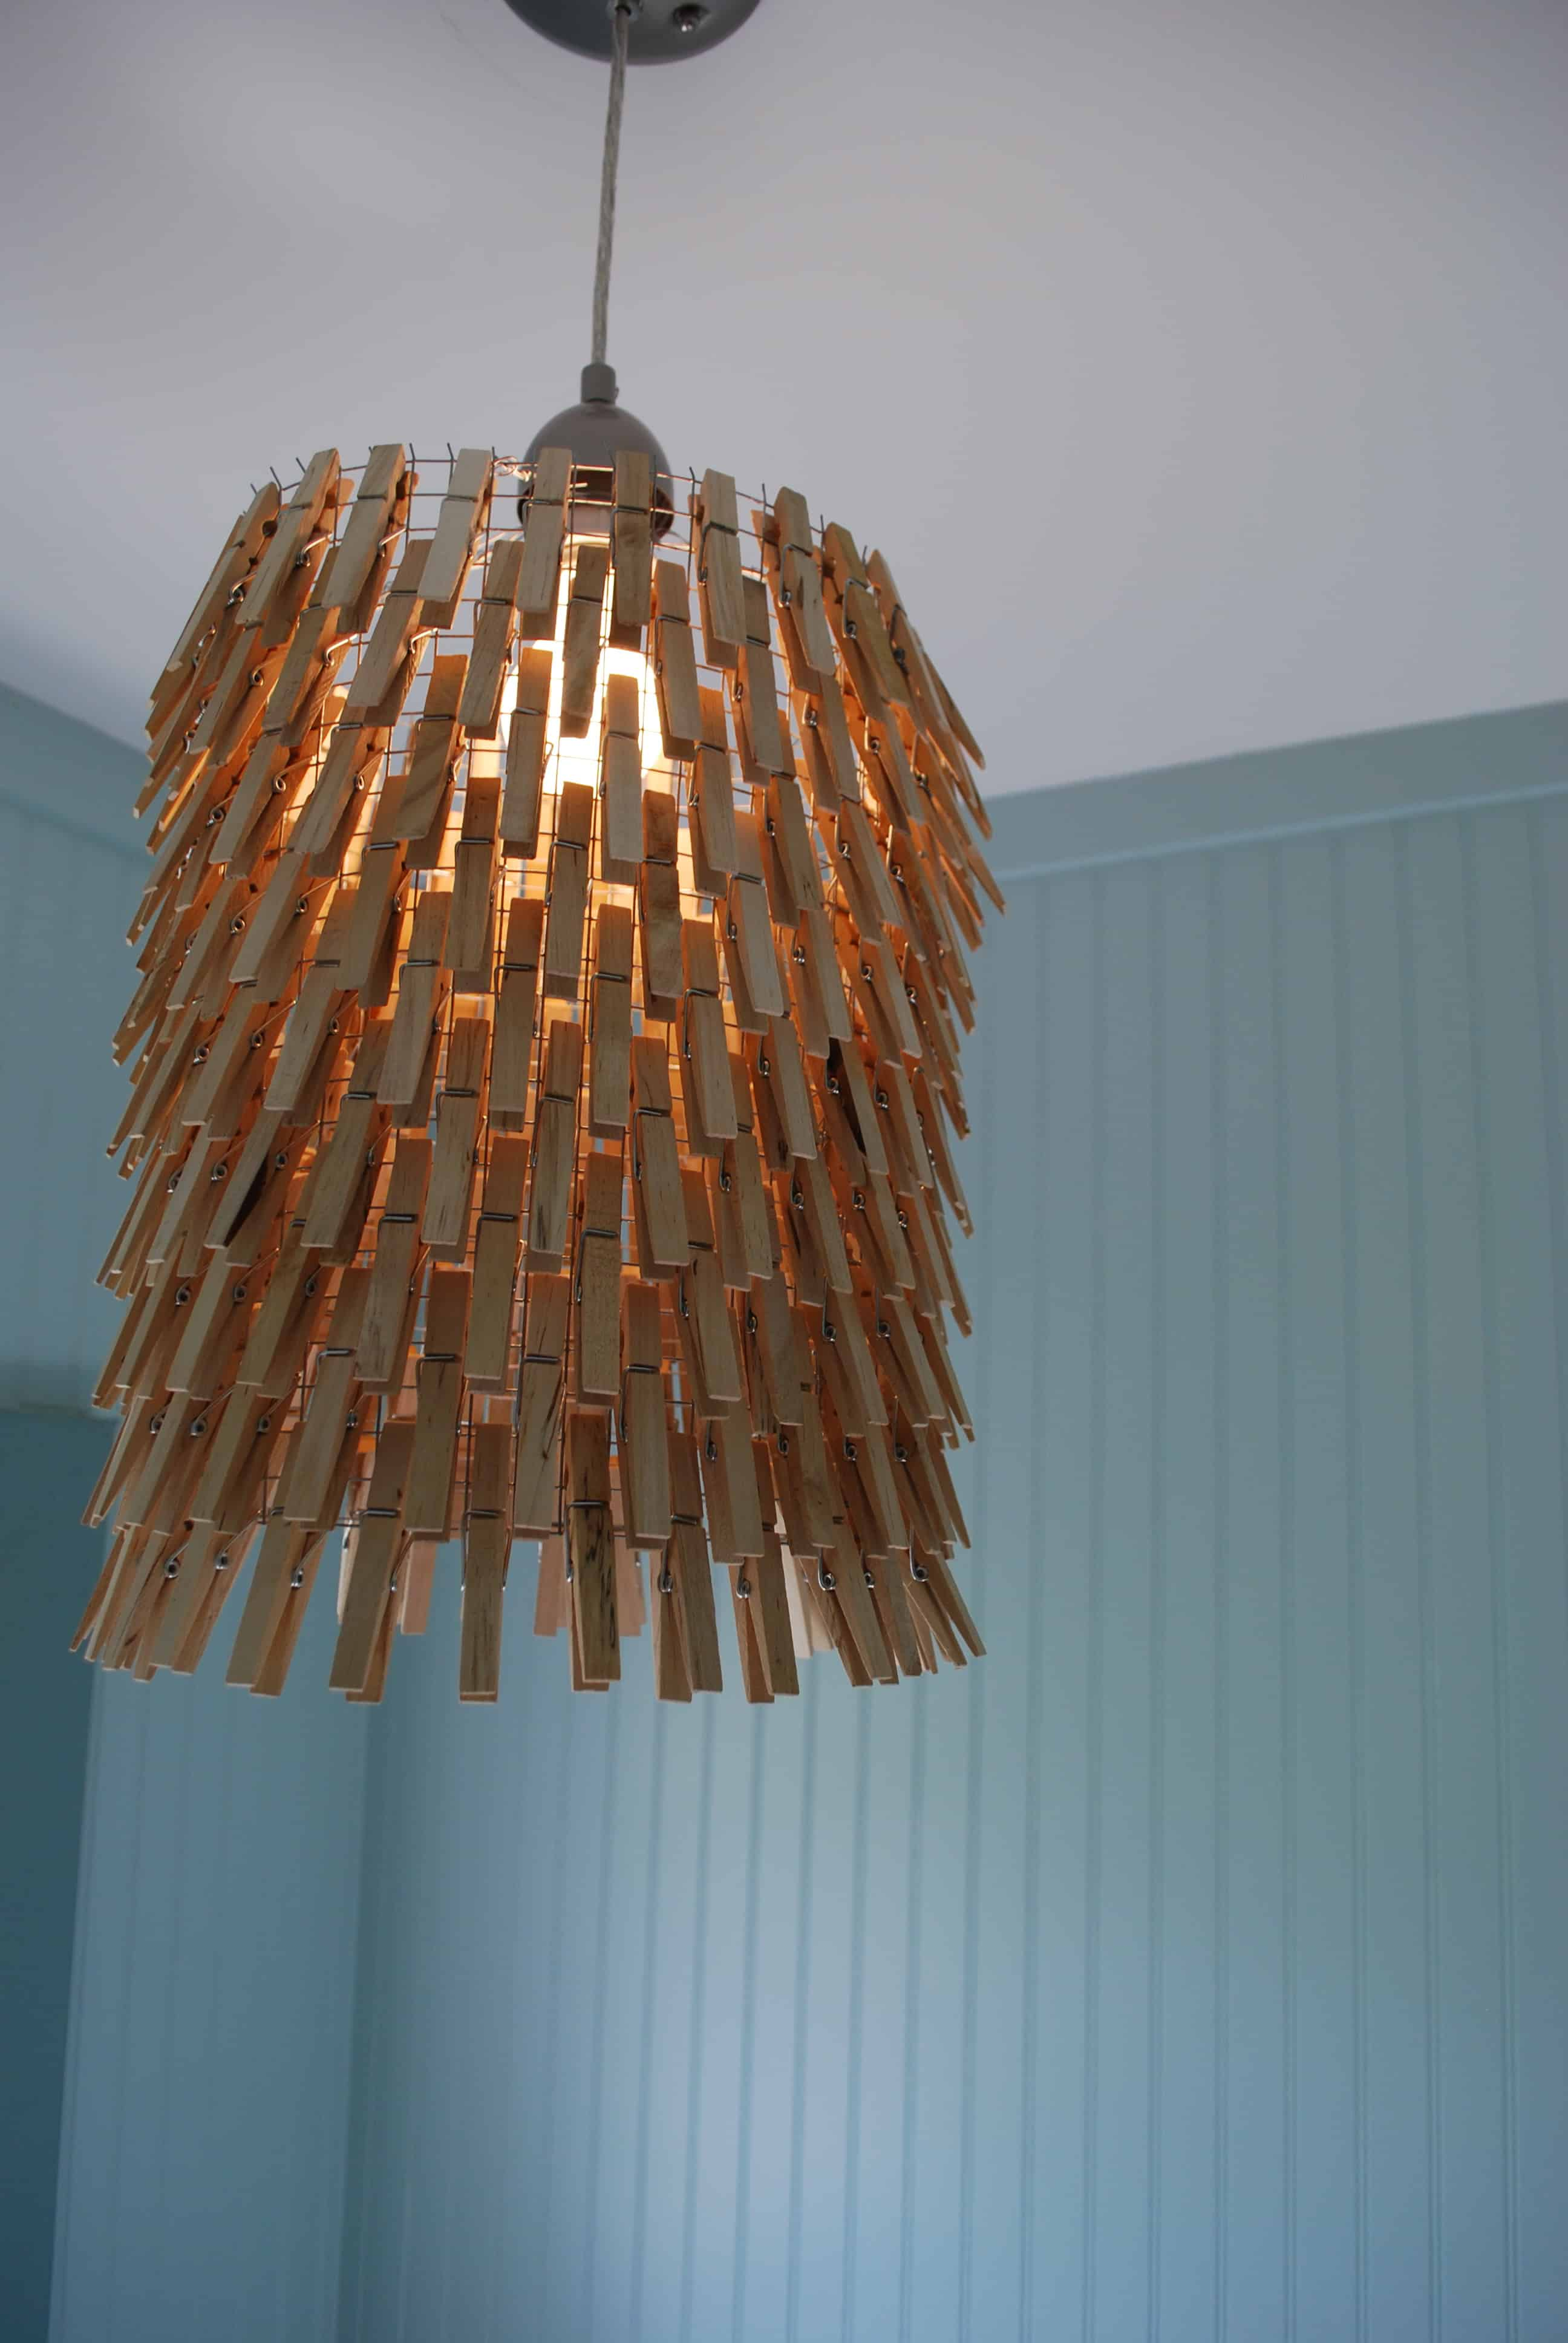 Wooden clothespin laundry room lamp shade